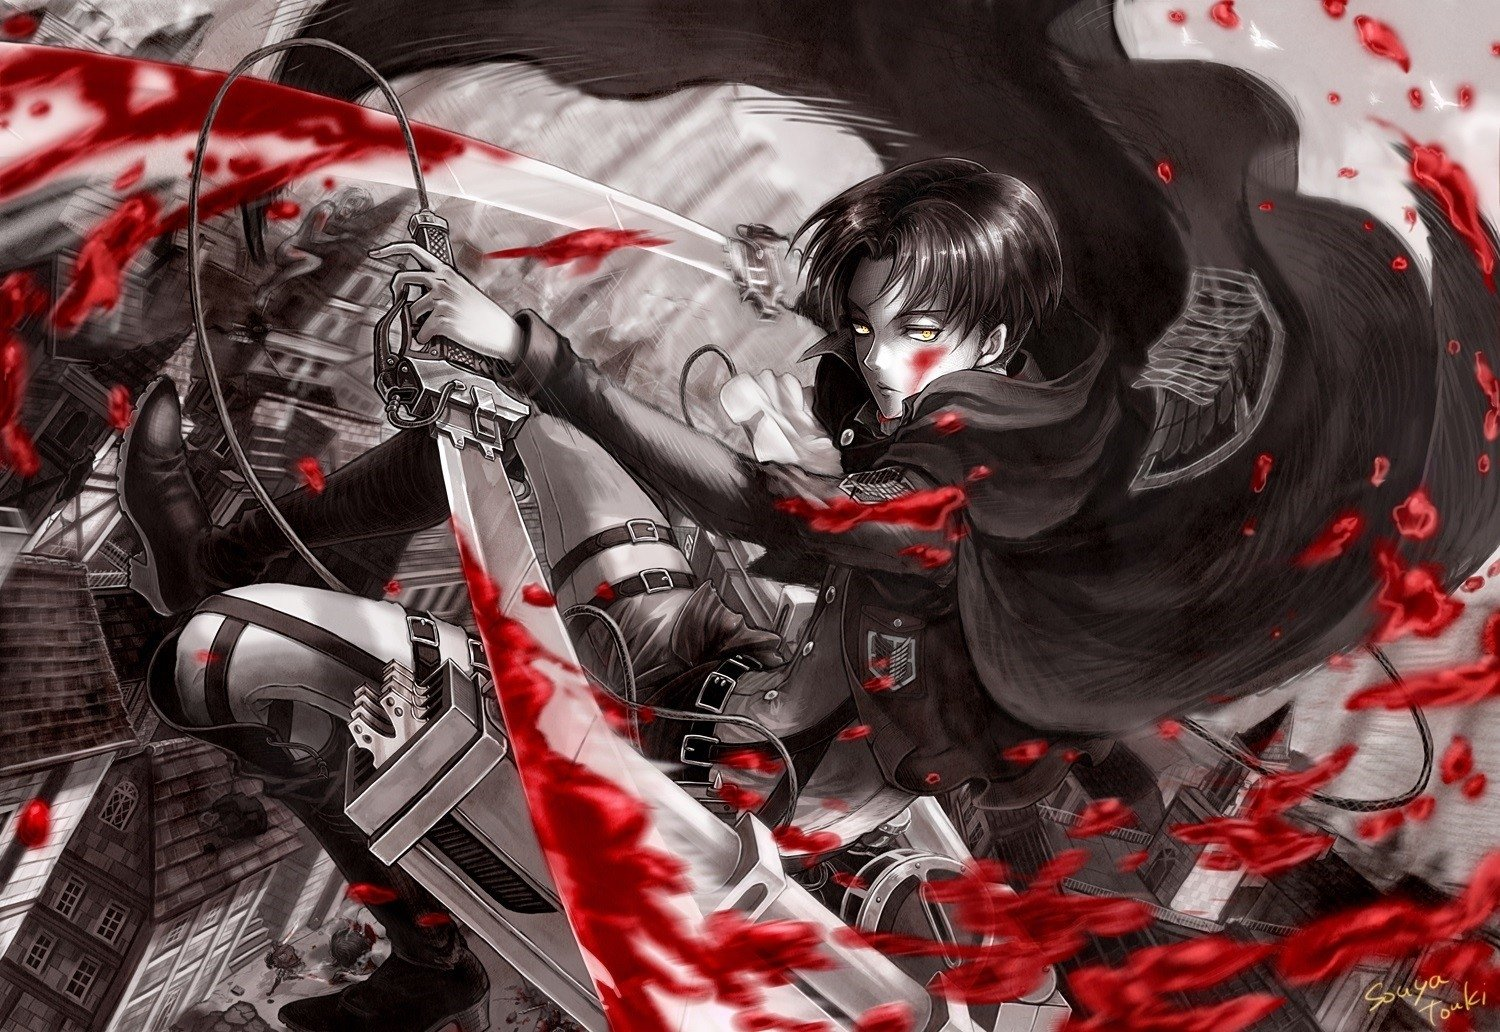 1529 attack on titan hd wallpapers background images wallpaper abyss hd wallpaper background image id607877 voltagebd Image collections